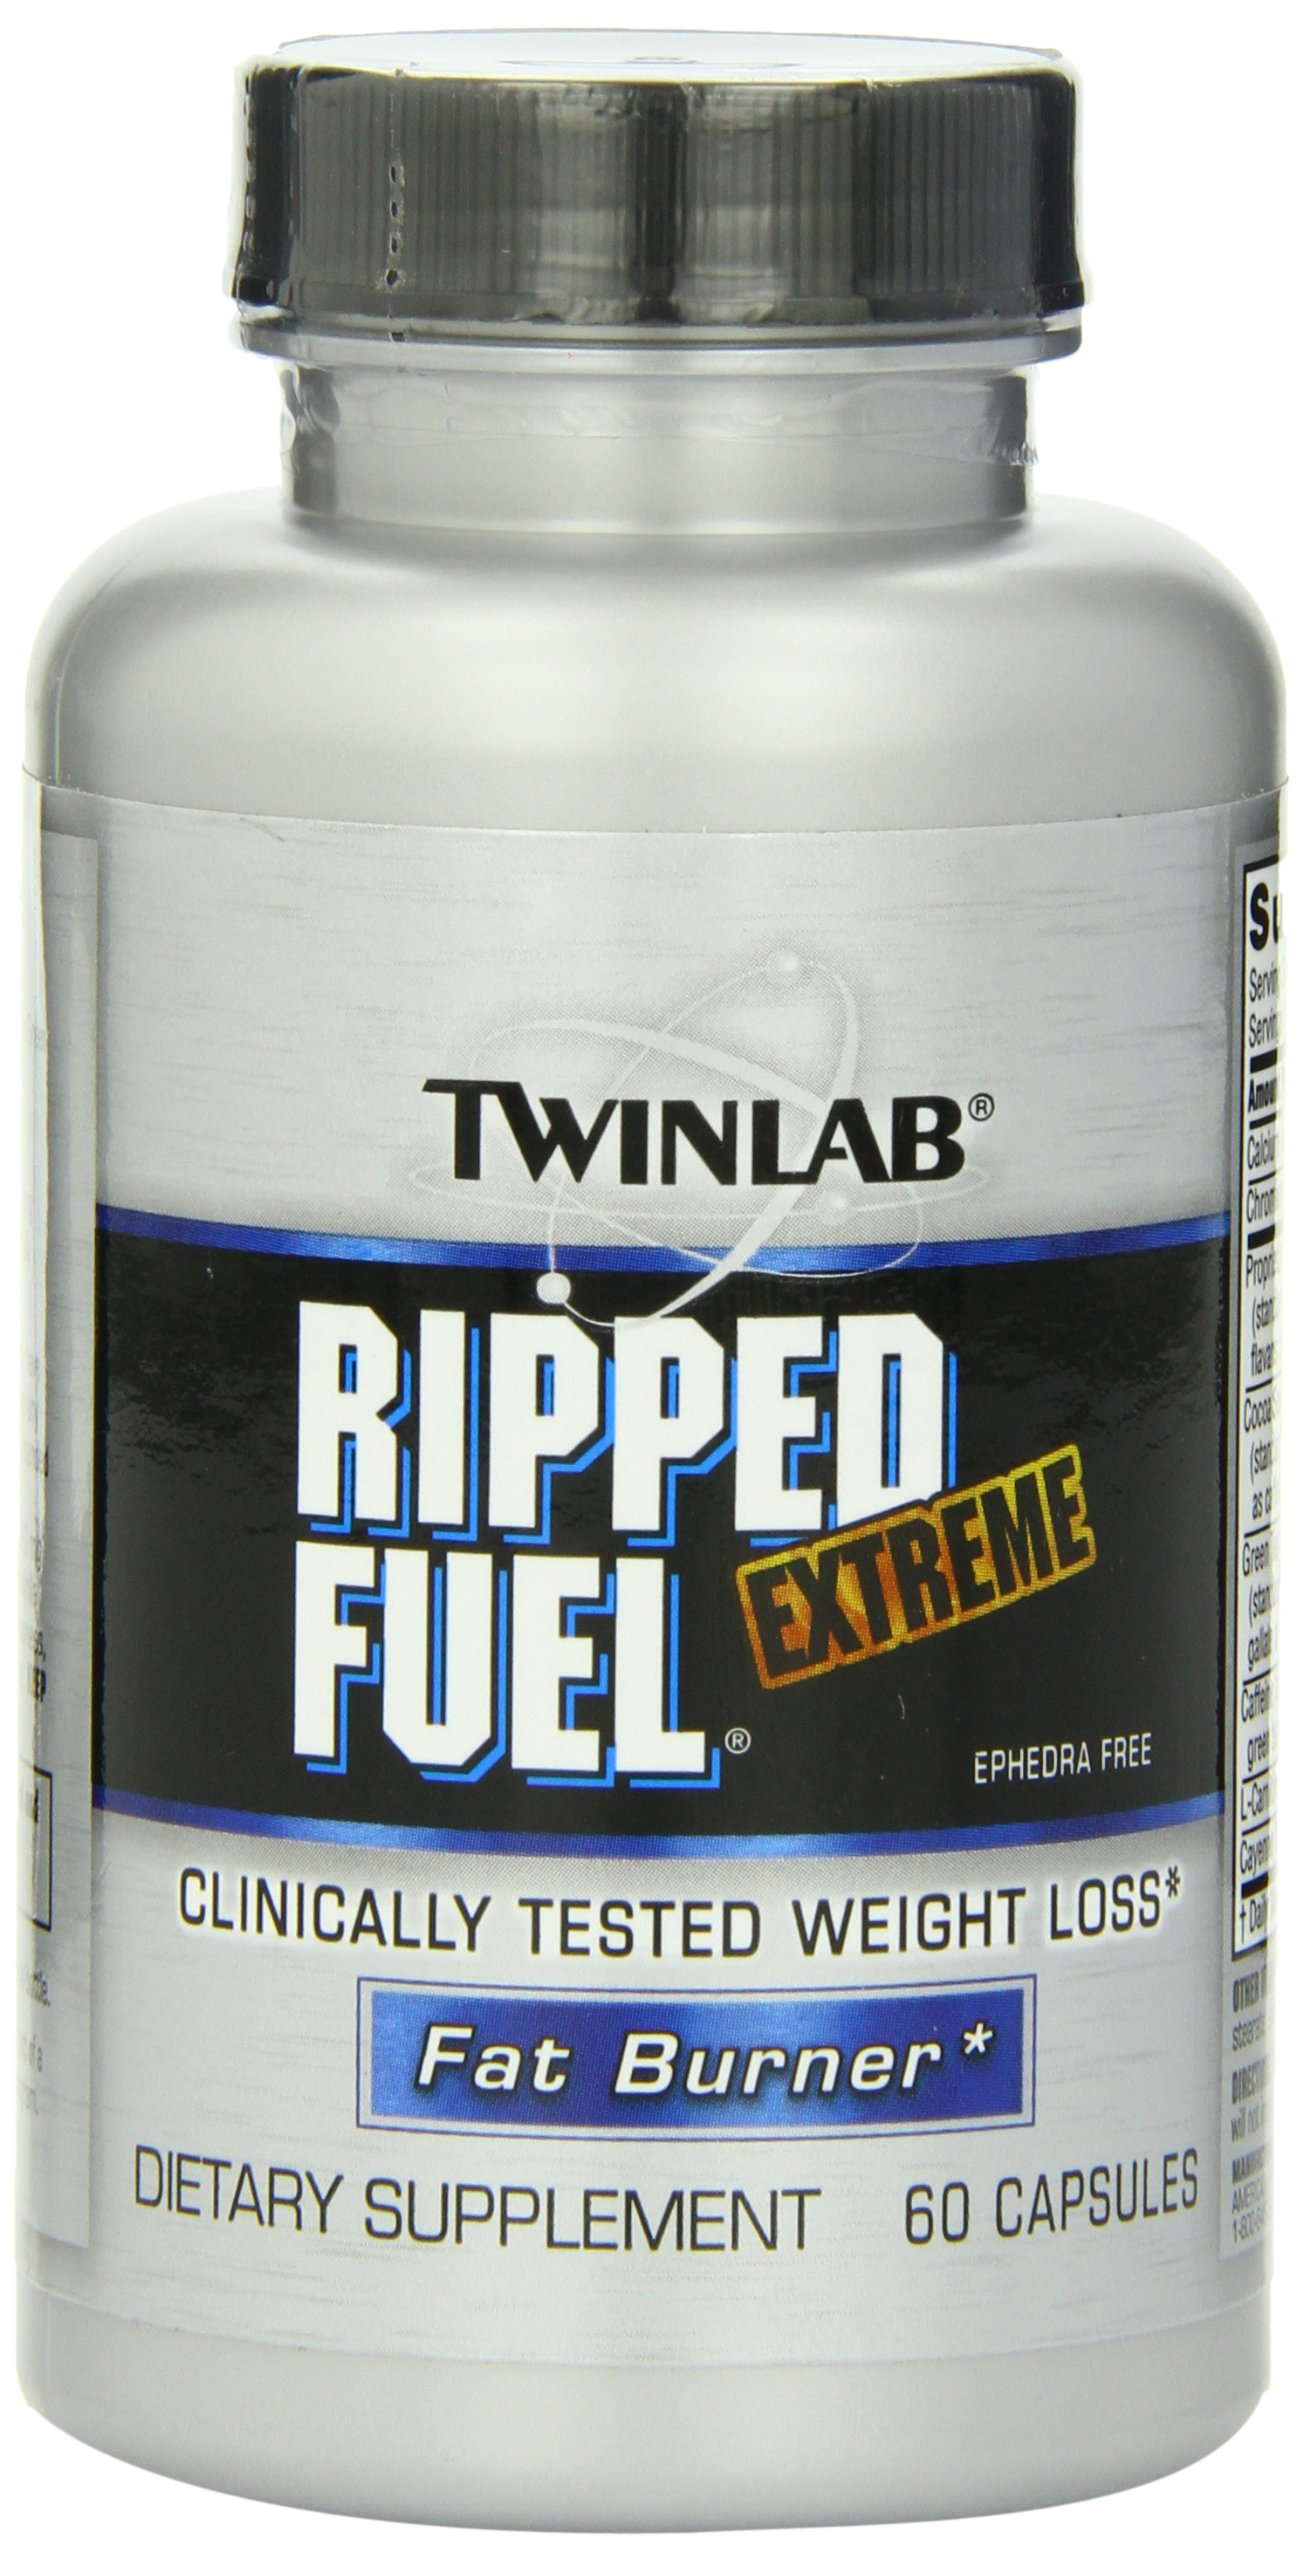 Twinlab Ripped Fuel Extreme Fat Burner, Ephedra Free, 60 Capsules by Twinlab